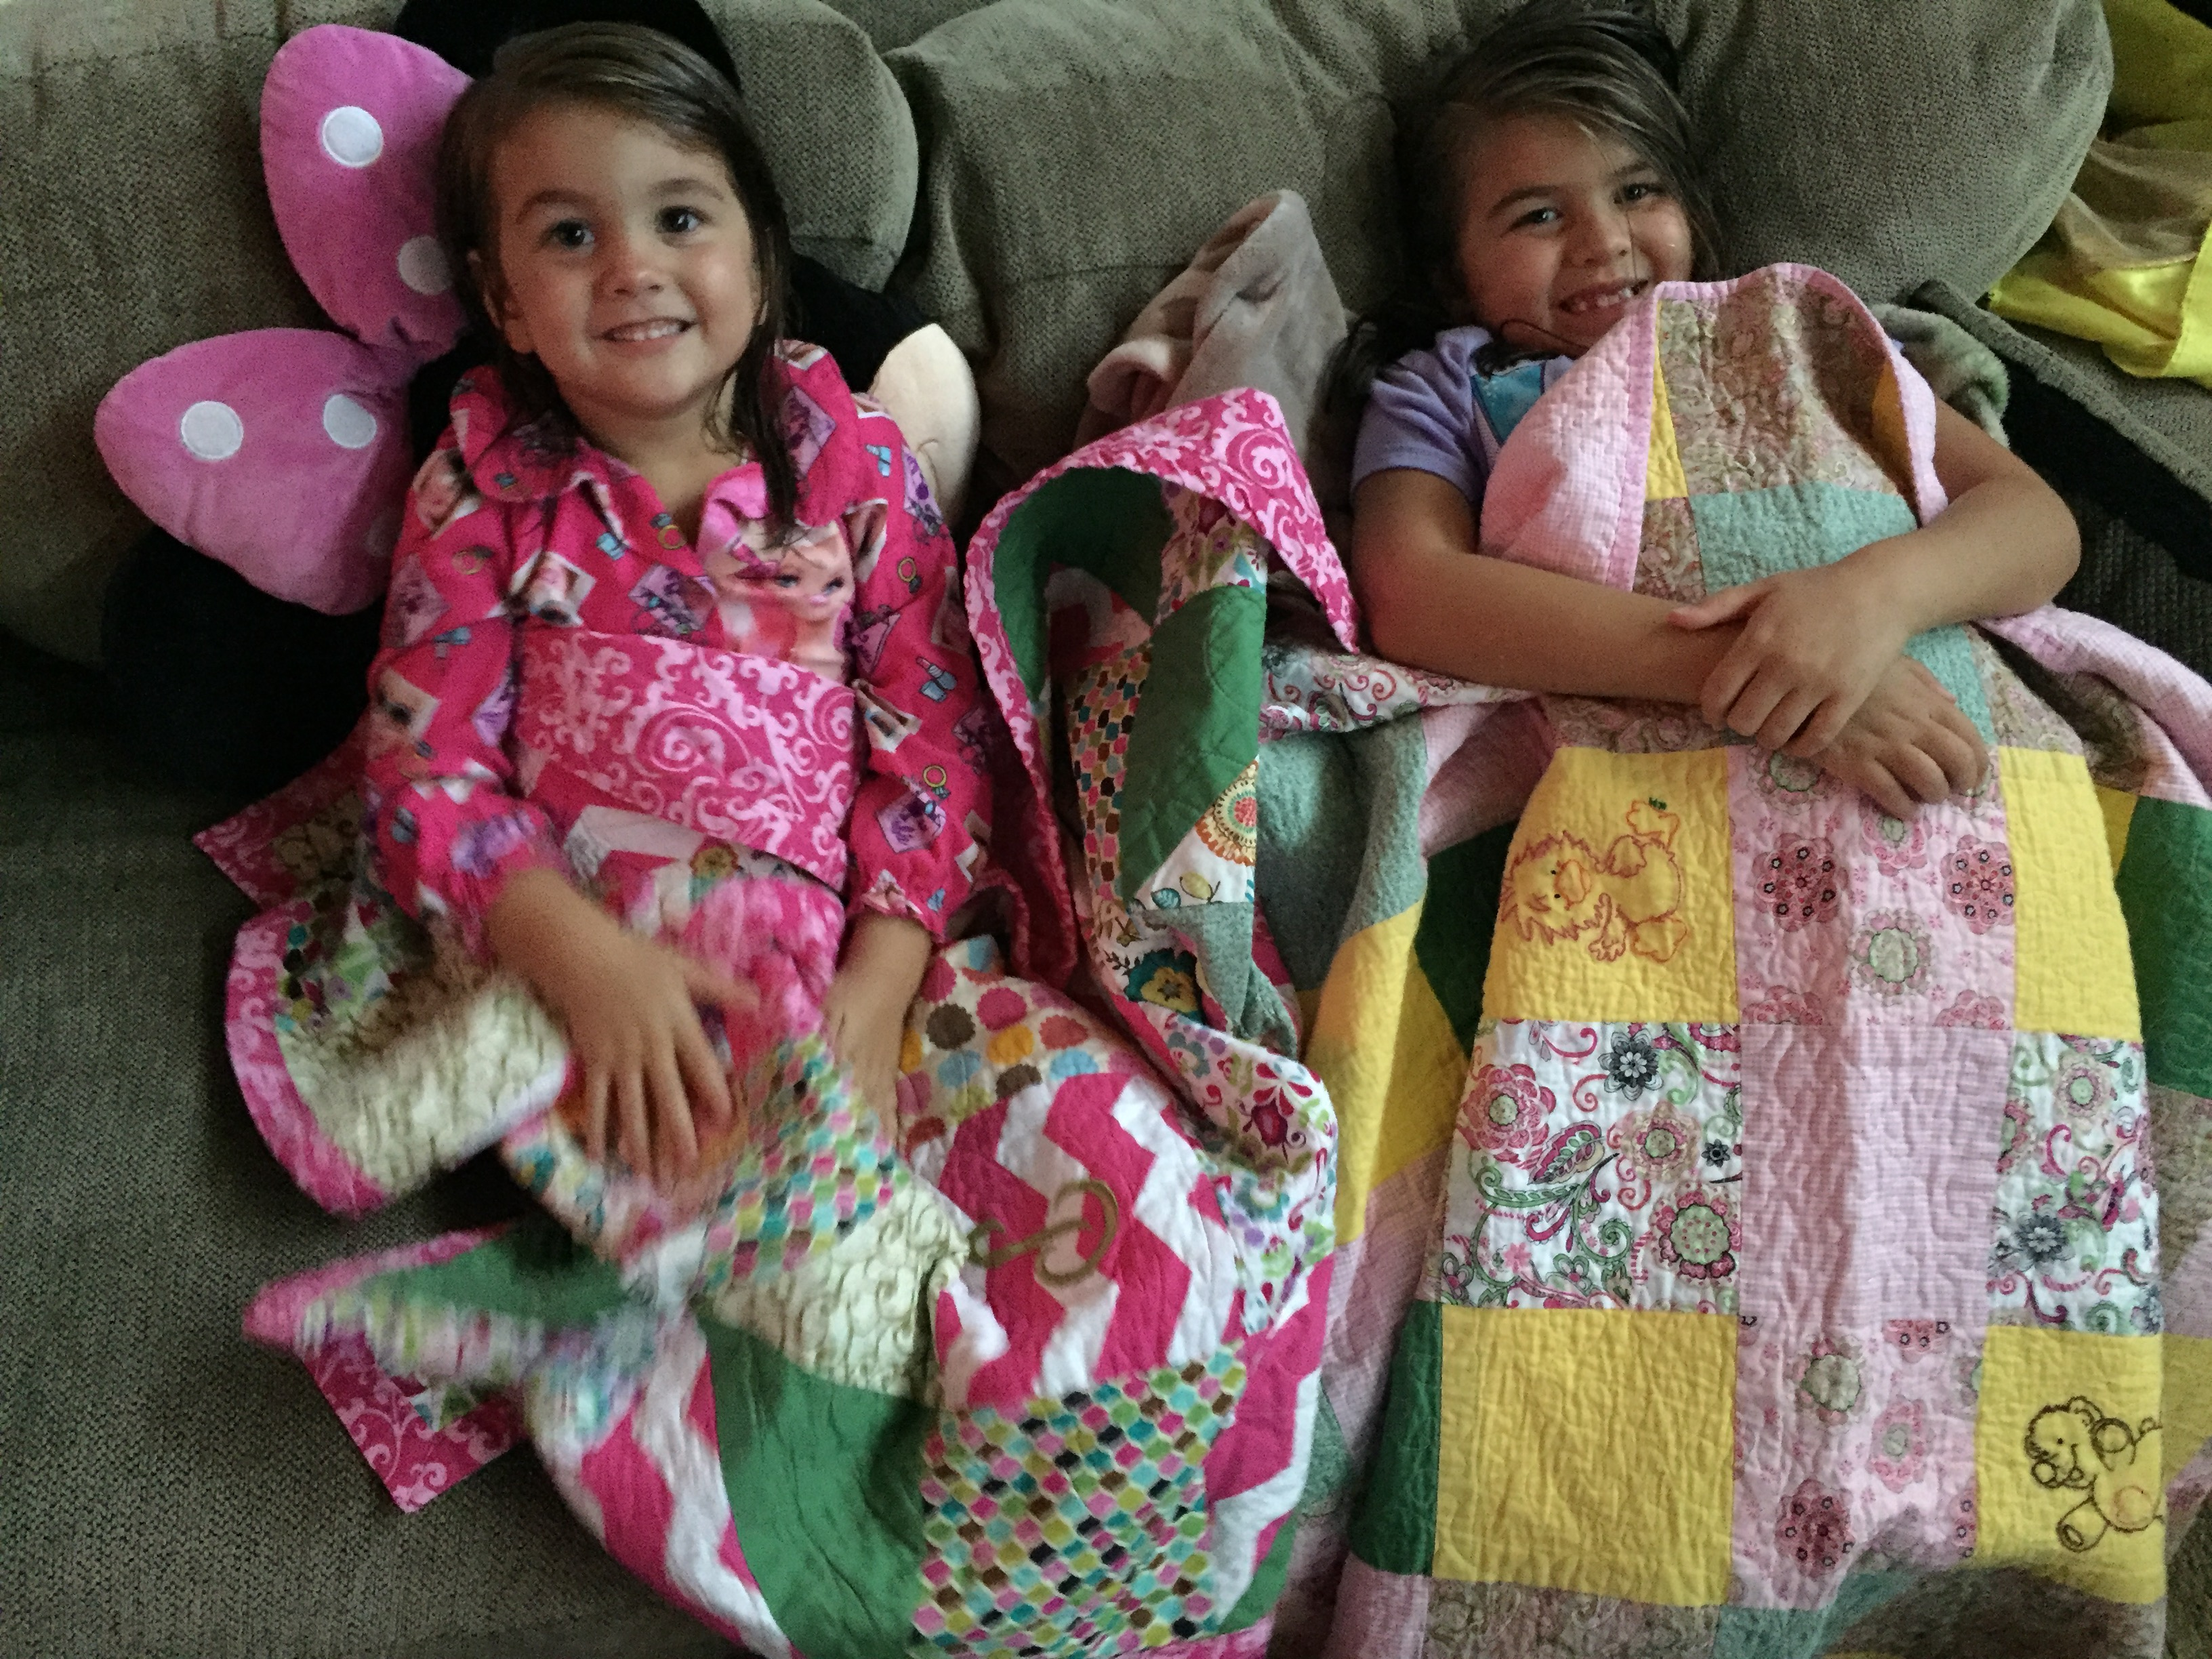 Kids_on_Quilts.jpg